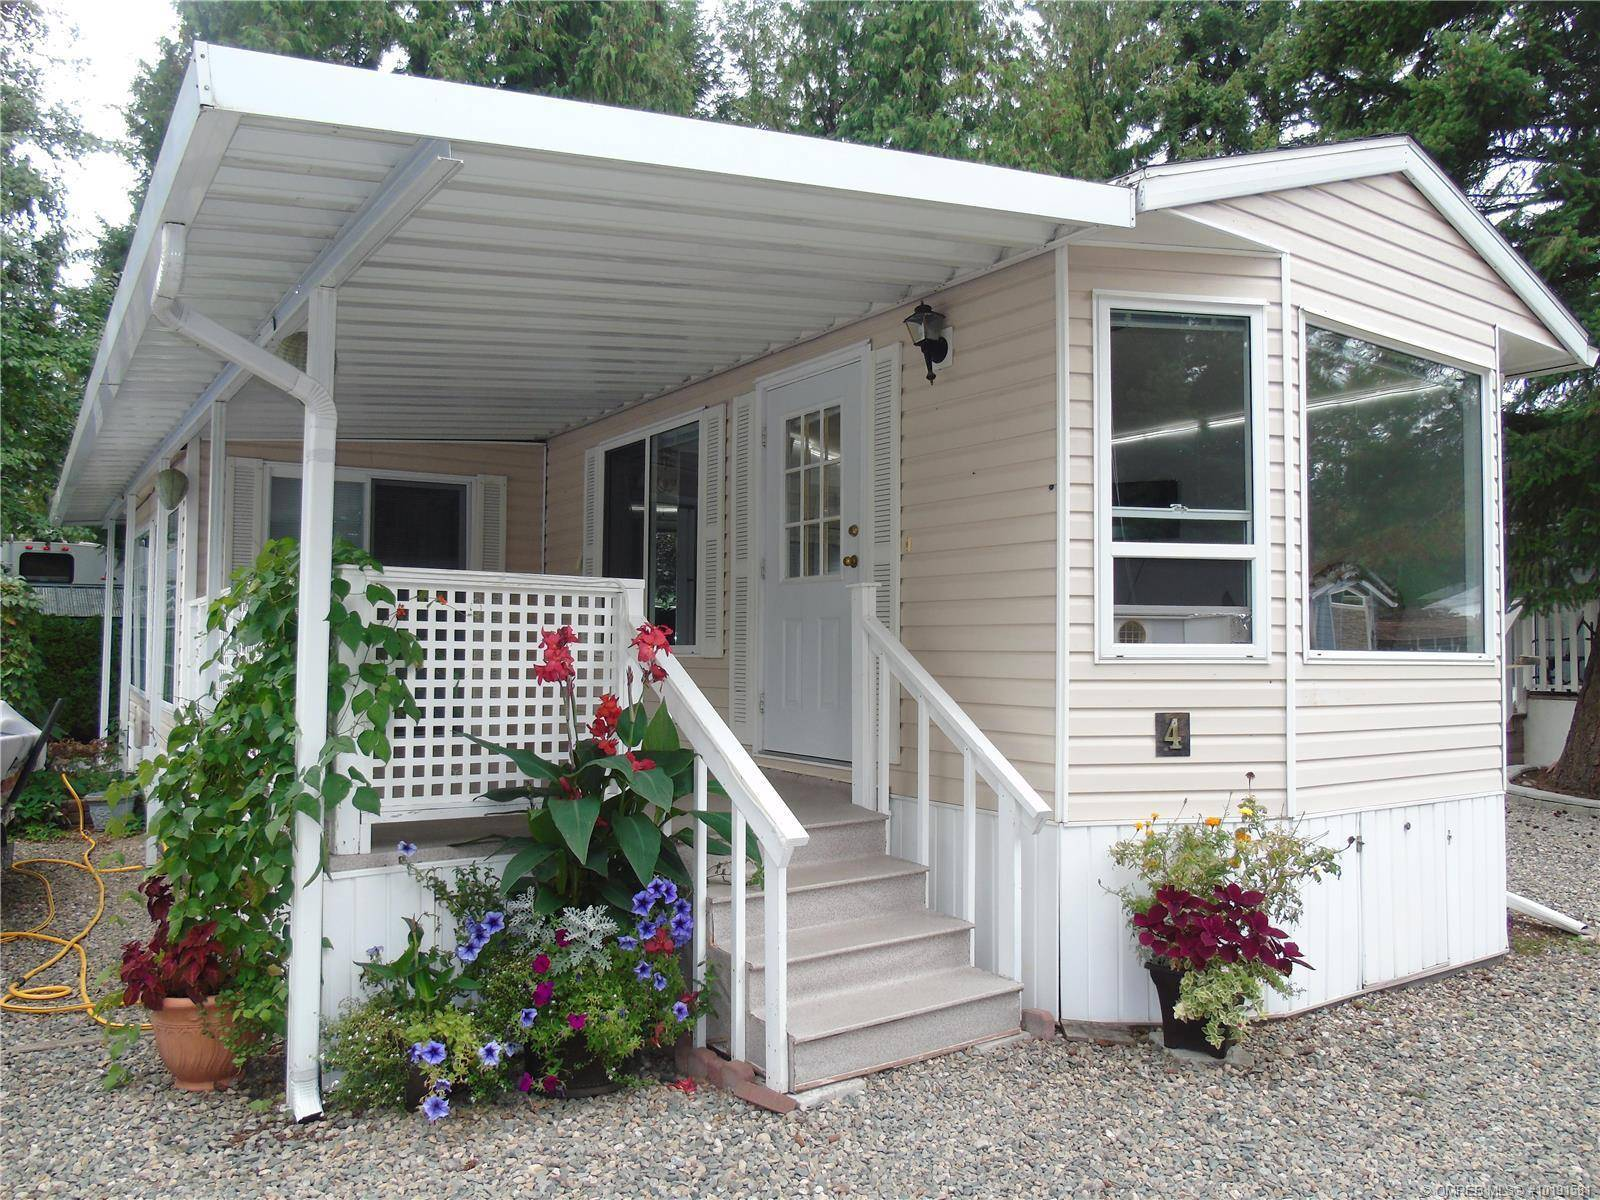 Home for sale at 3980 Squilax-anglemont Rd Unit 4 Scotch Creek British Columbia - MLS: 10191581